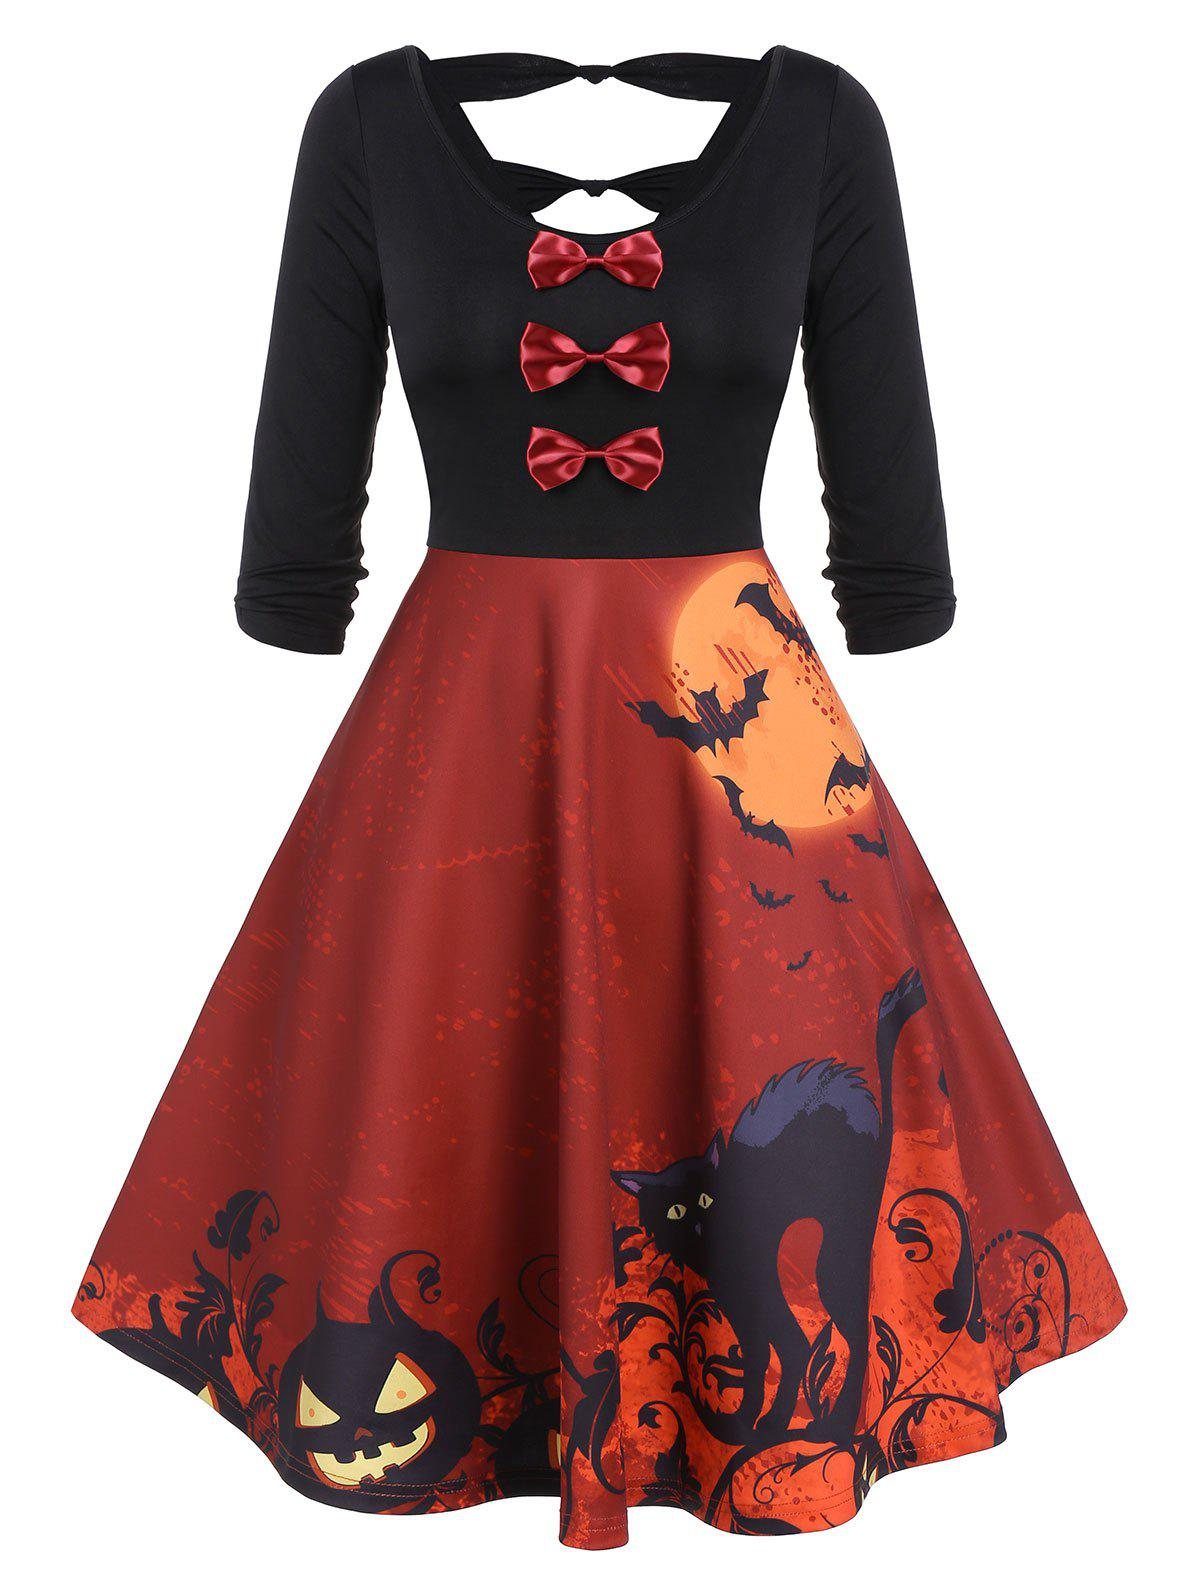 Shops Vintage Bowknot Cut Out Halloween Printed Swing Dress